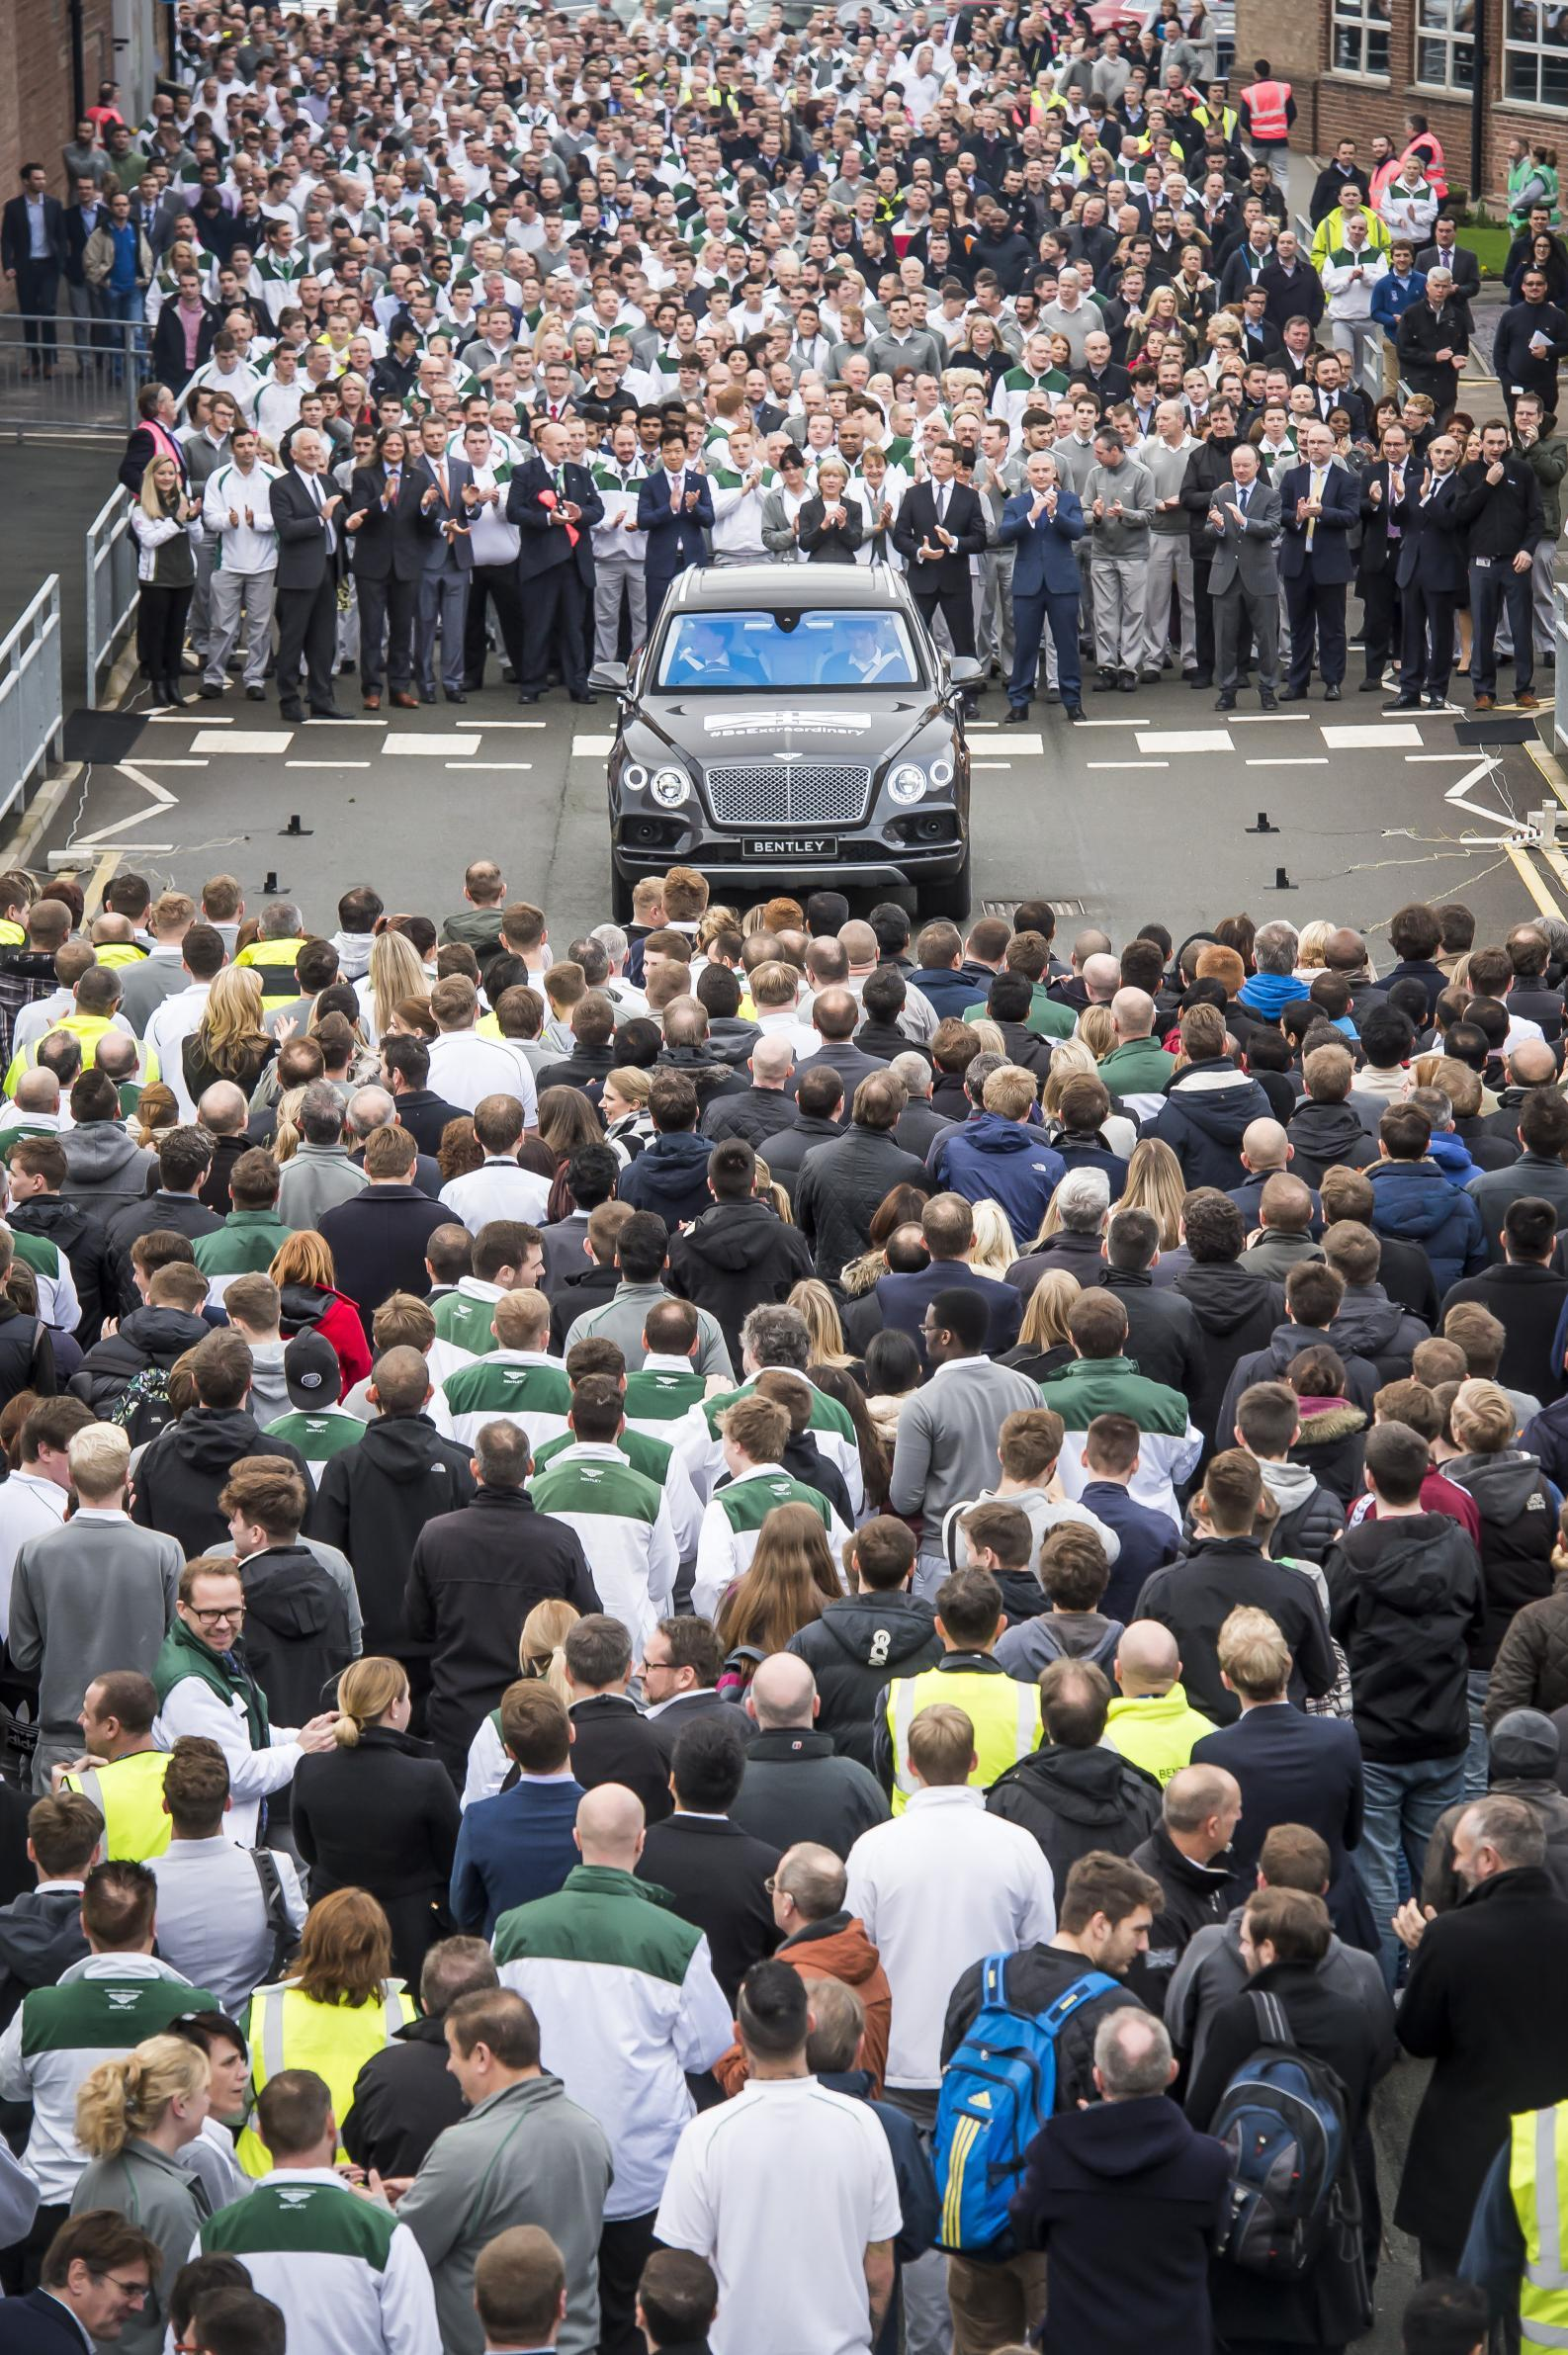 The first production Bentley Bentayga makes its debut